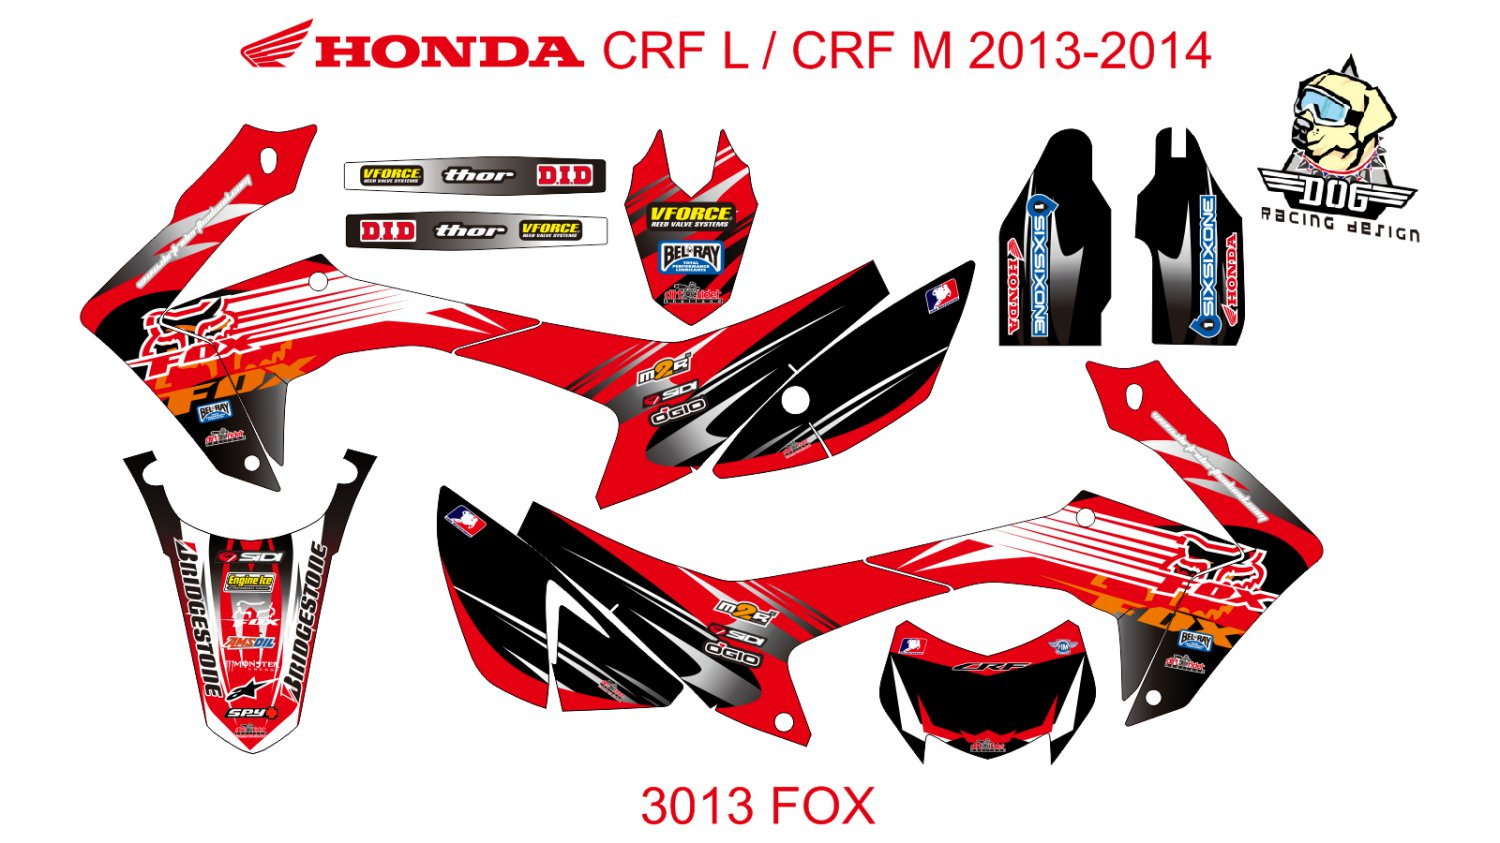 HONDA CRF L CRF M 2013-2014 GRAPHIC DECAL KIT CODE.3013